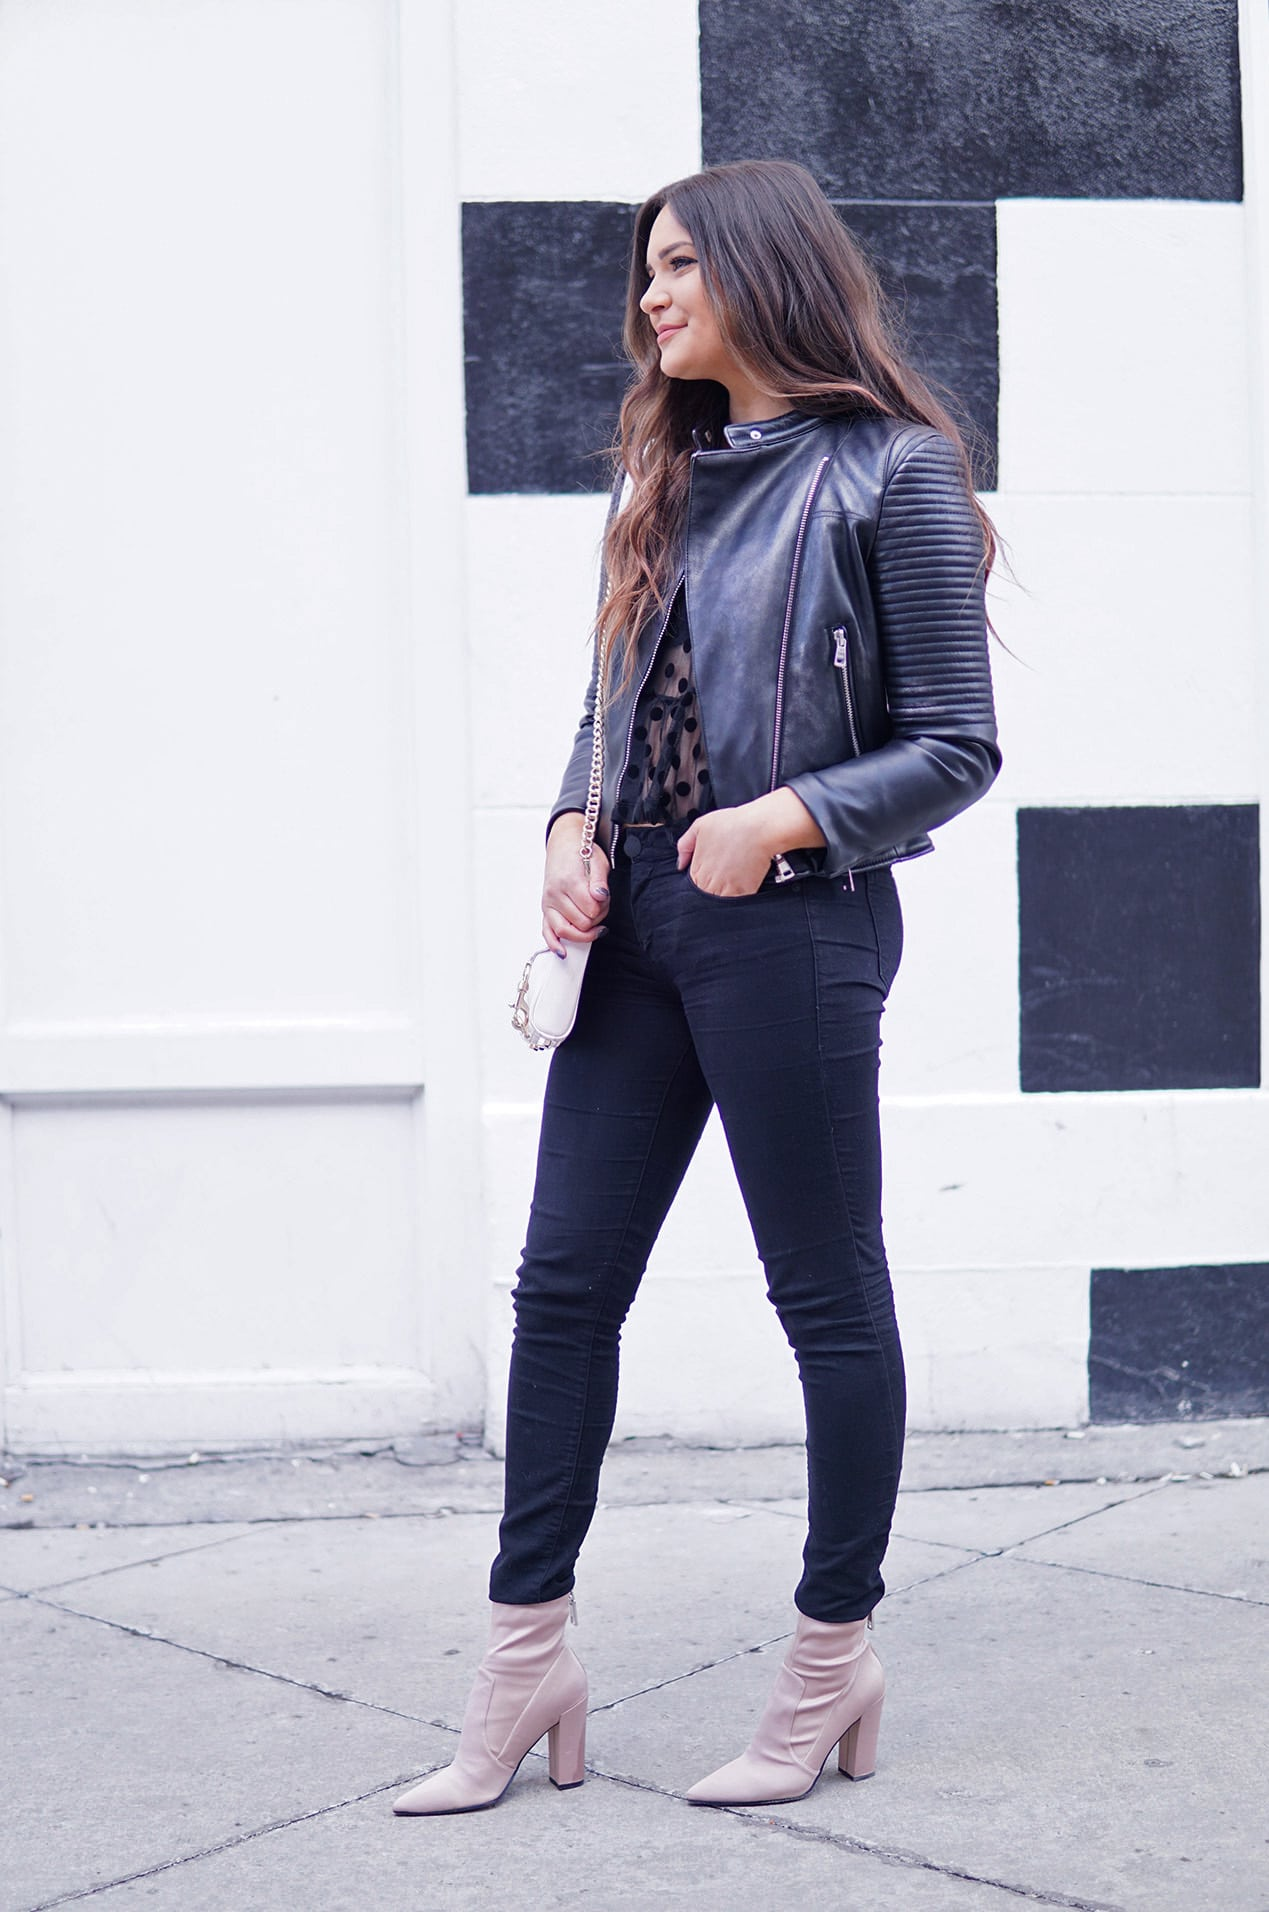 girls night out outfit | girls night | date night ideas | fashion | boots | leather jacket |  Mash Elle beauty blogger